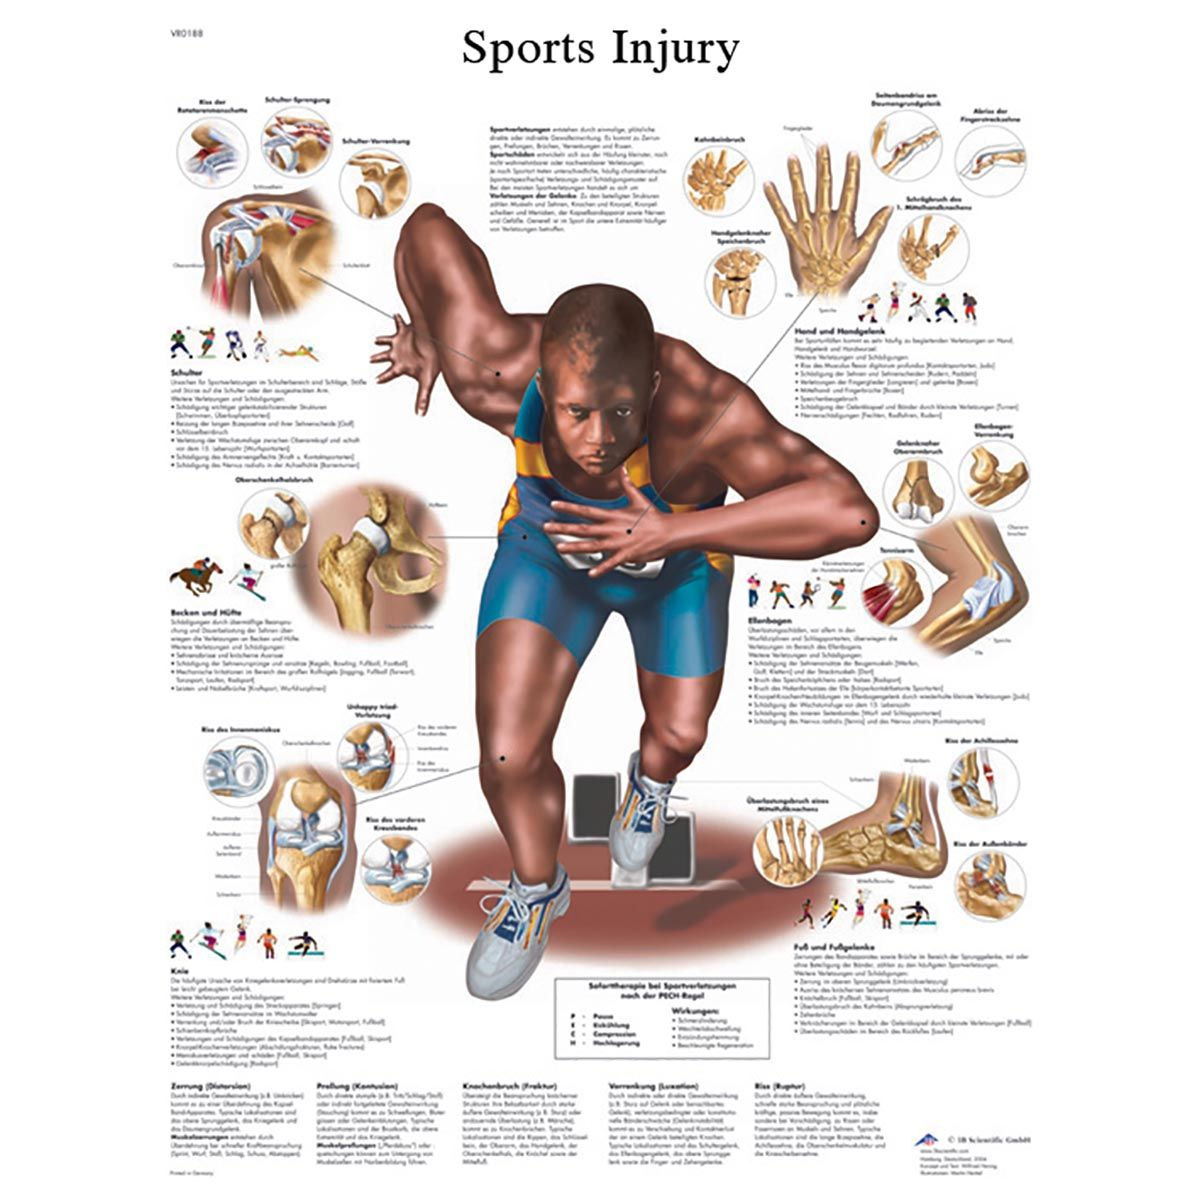 Anatomical Charts And Posters Anatomy Charts Vinyl Adhesive Charts Sticky Chart Sports Injury Stickychart Sports Physical Therapy Athletic Training Sports Medicine Sports Massage Therapy